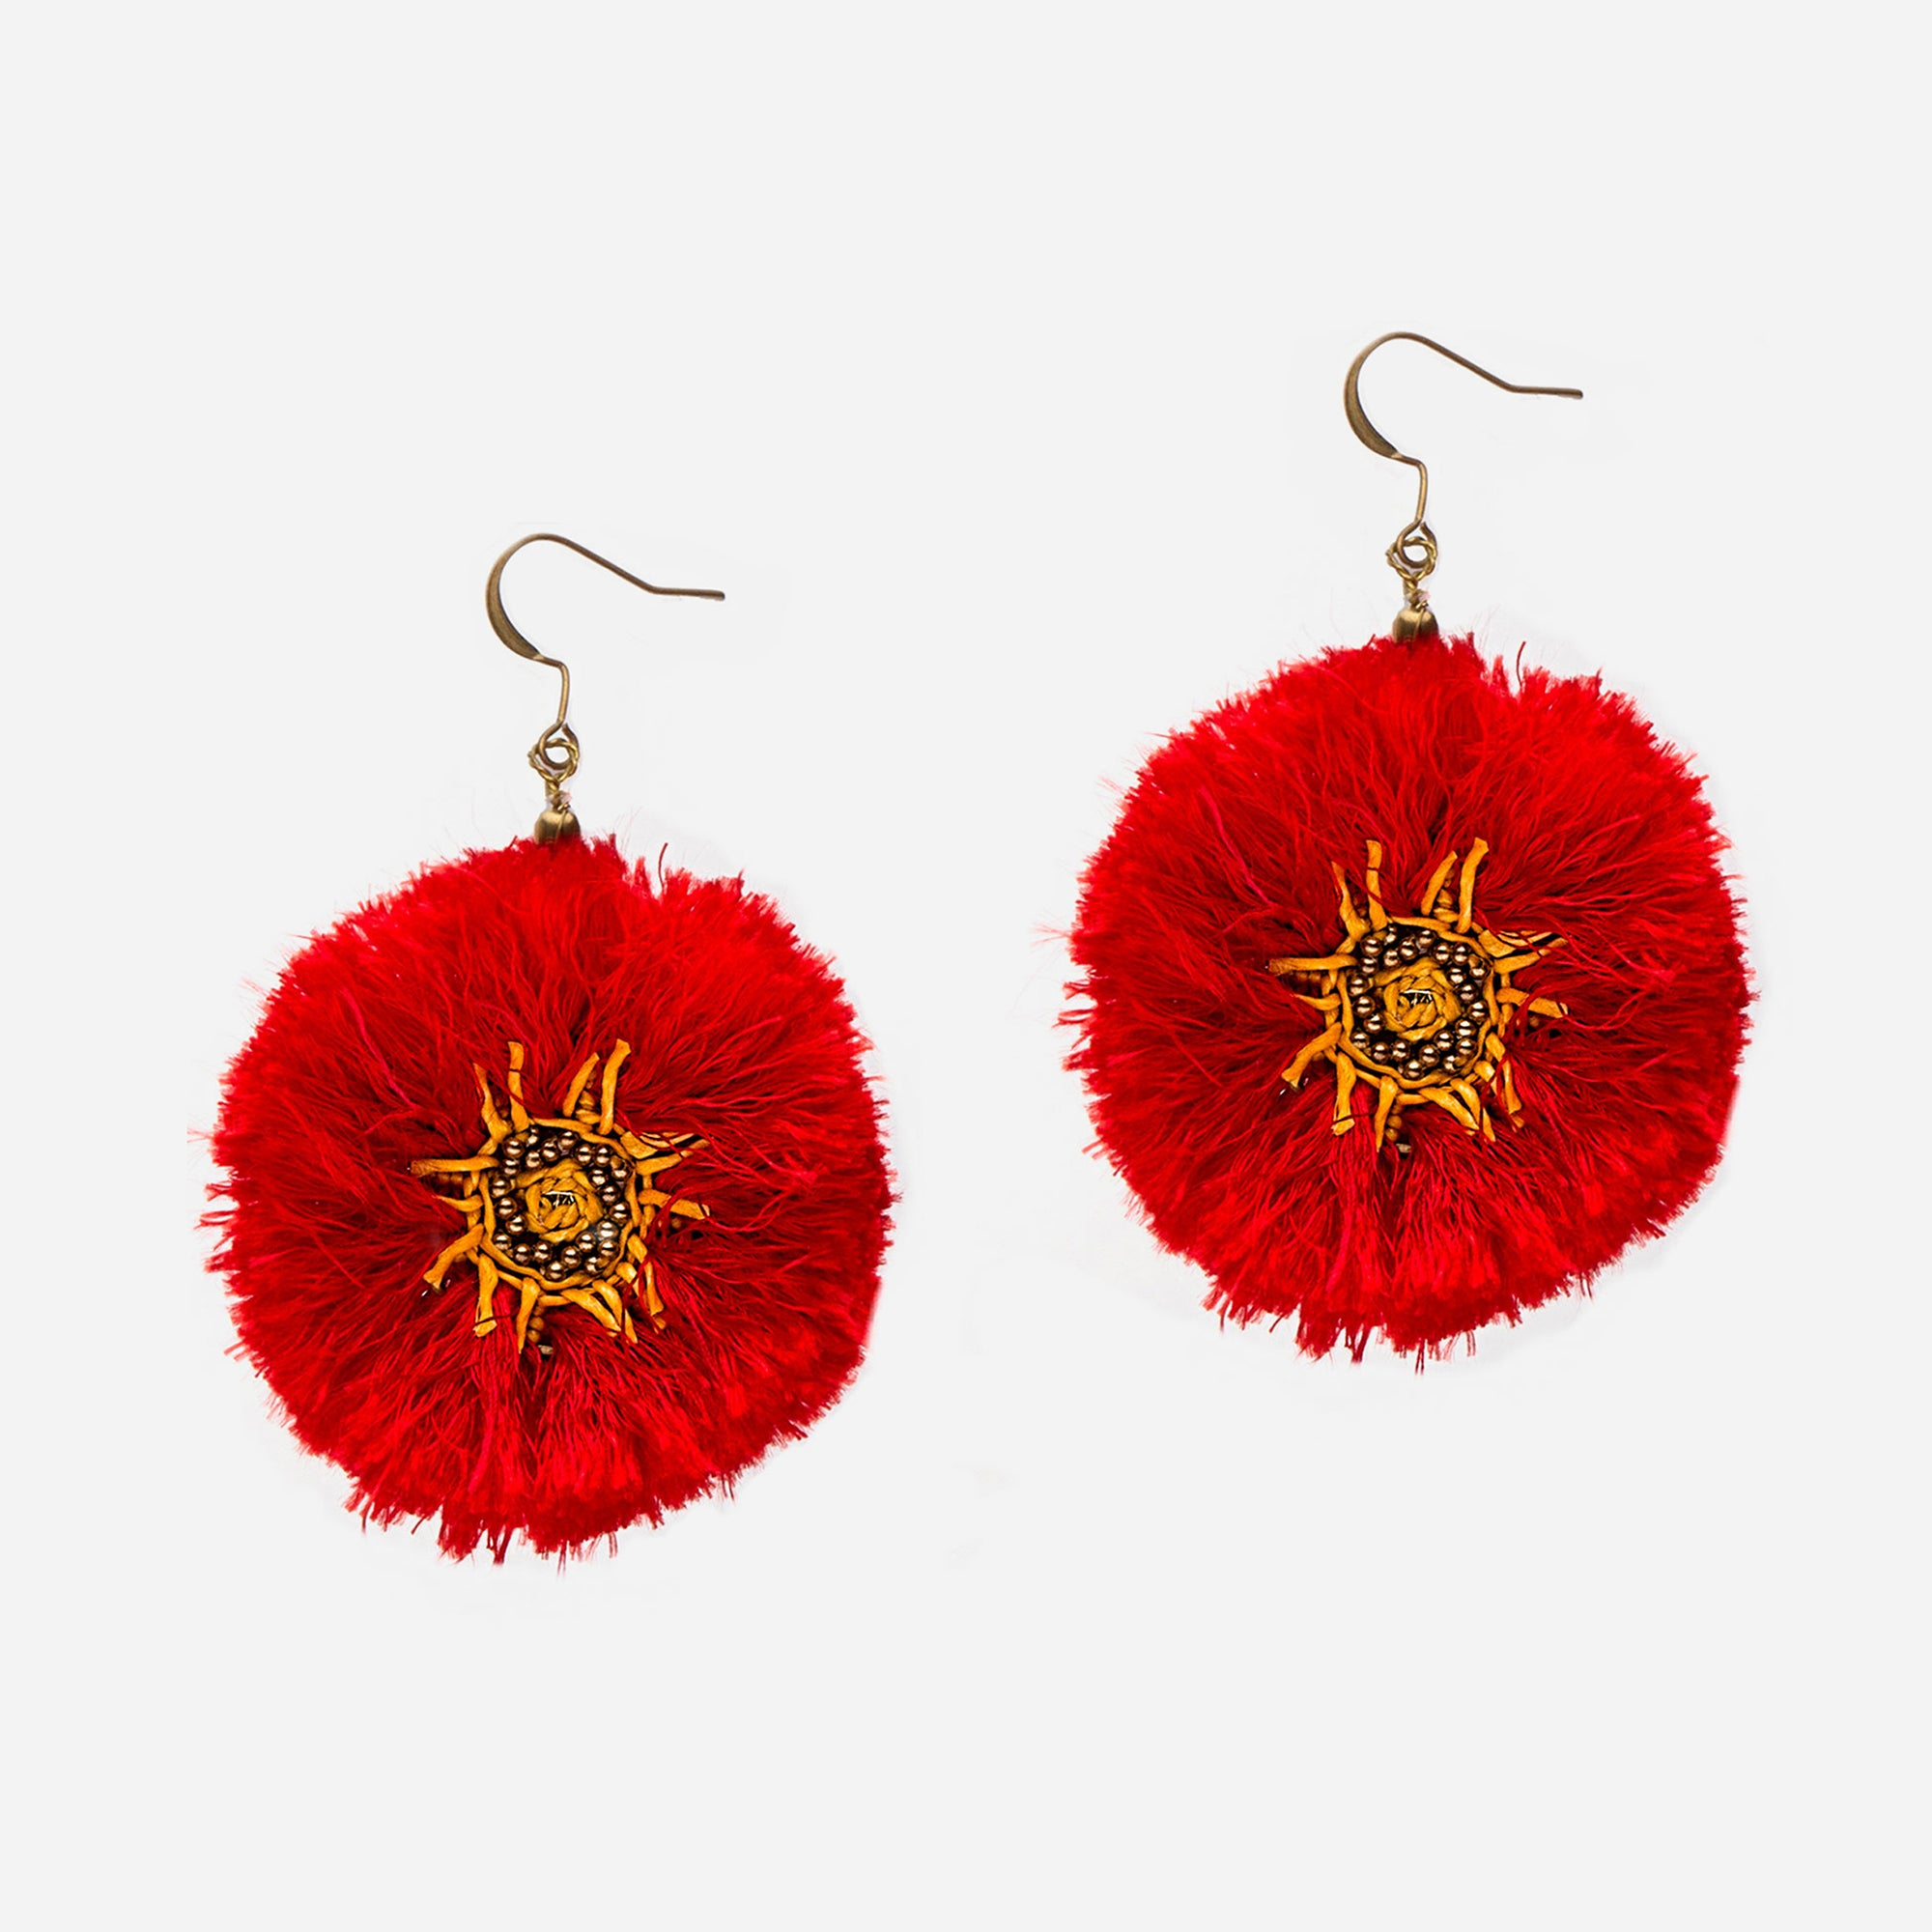 Bali fringe earrings - Frances Valentine